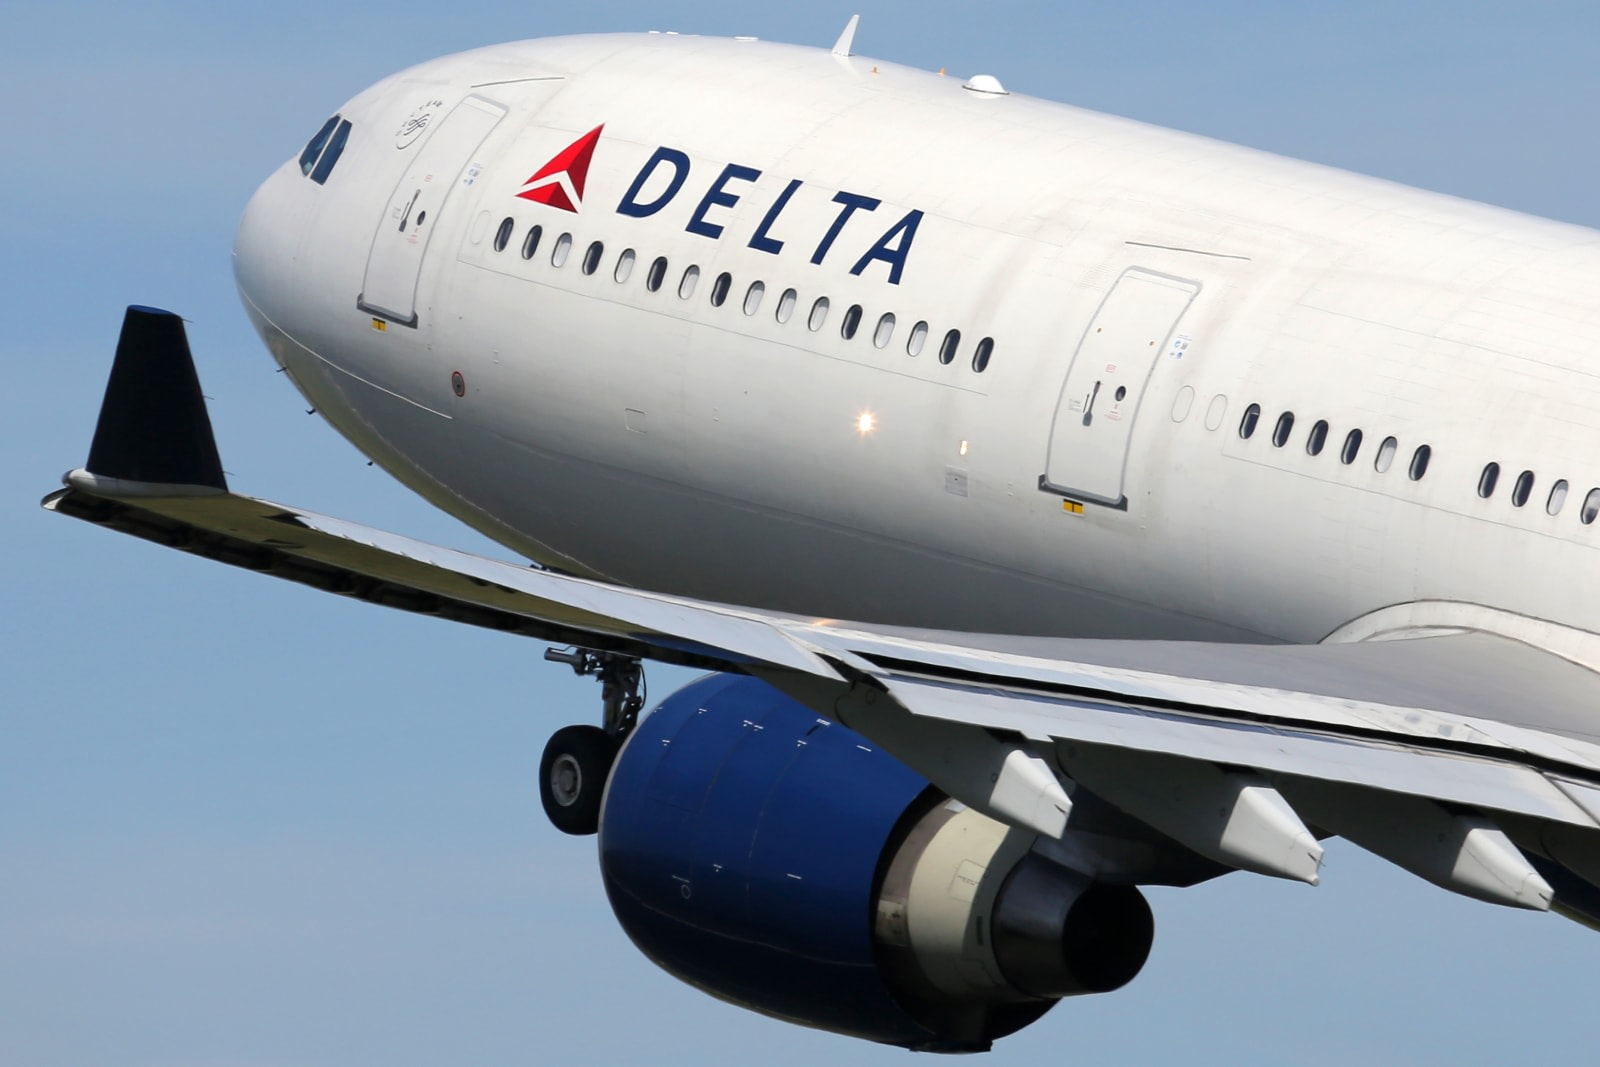 Delta adds free messaging to its WiFi-enabled flights